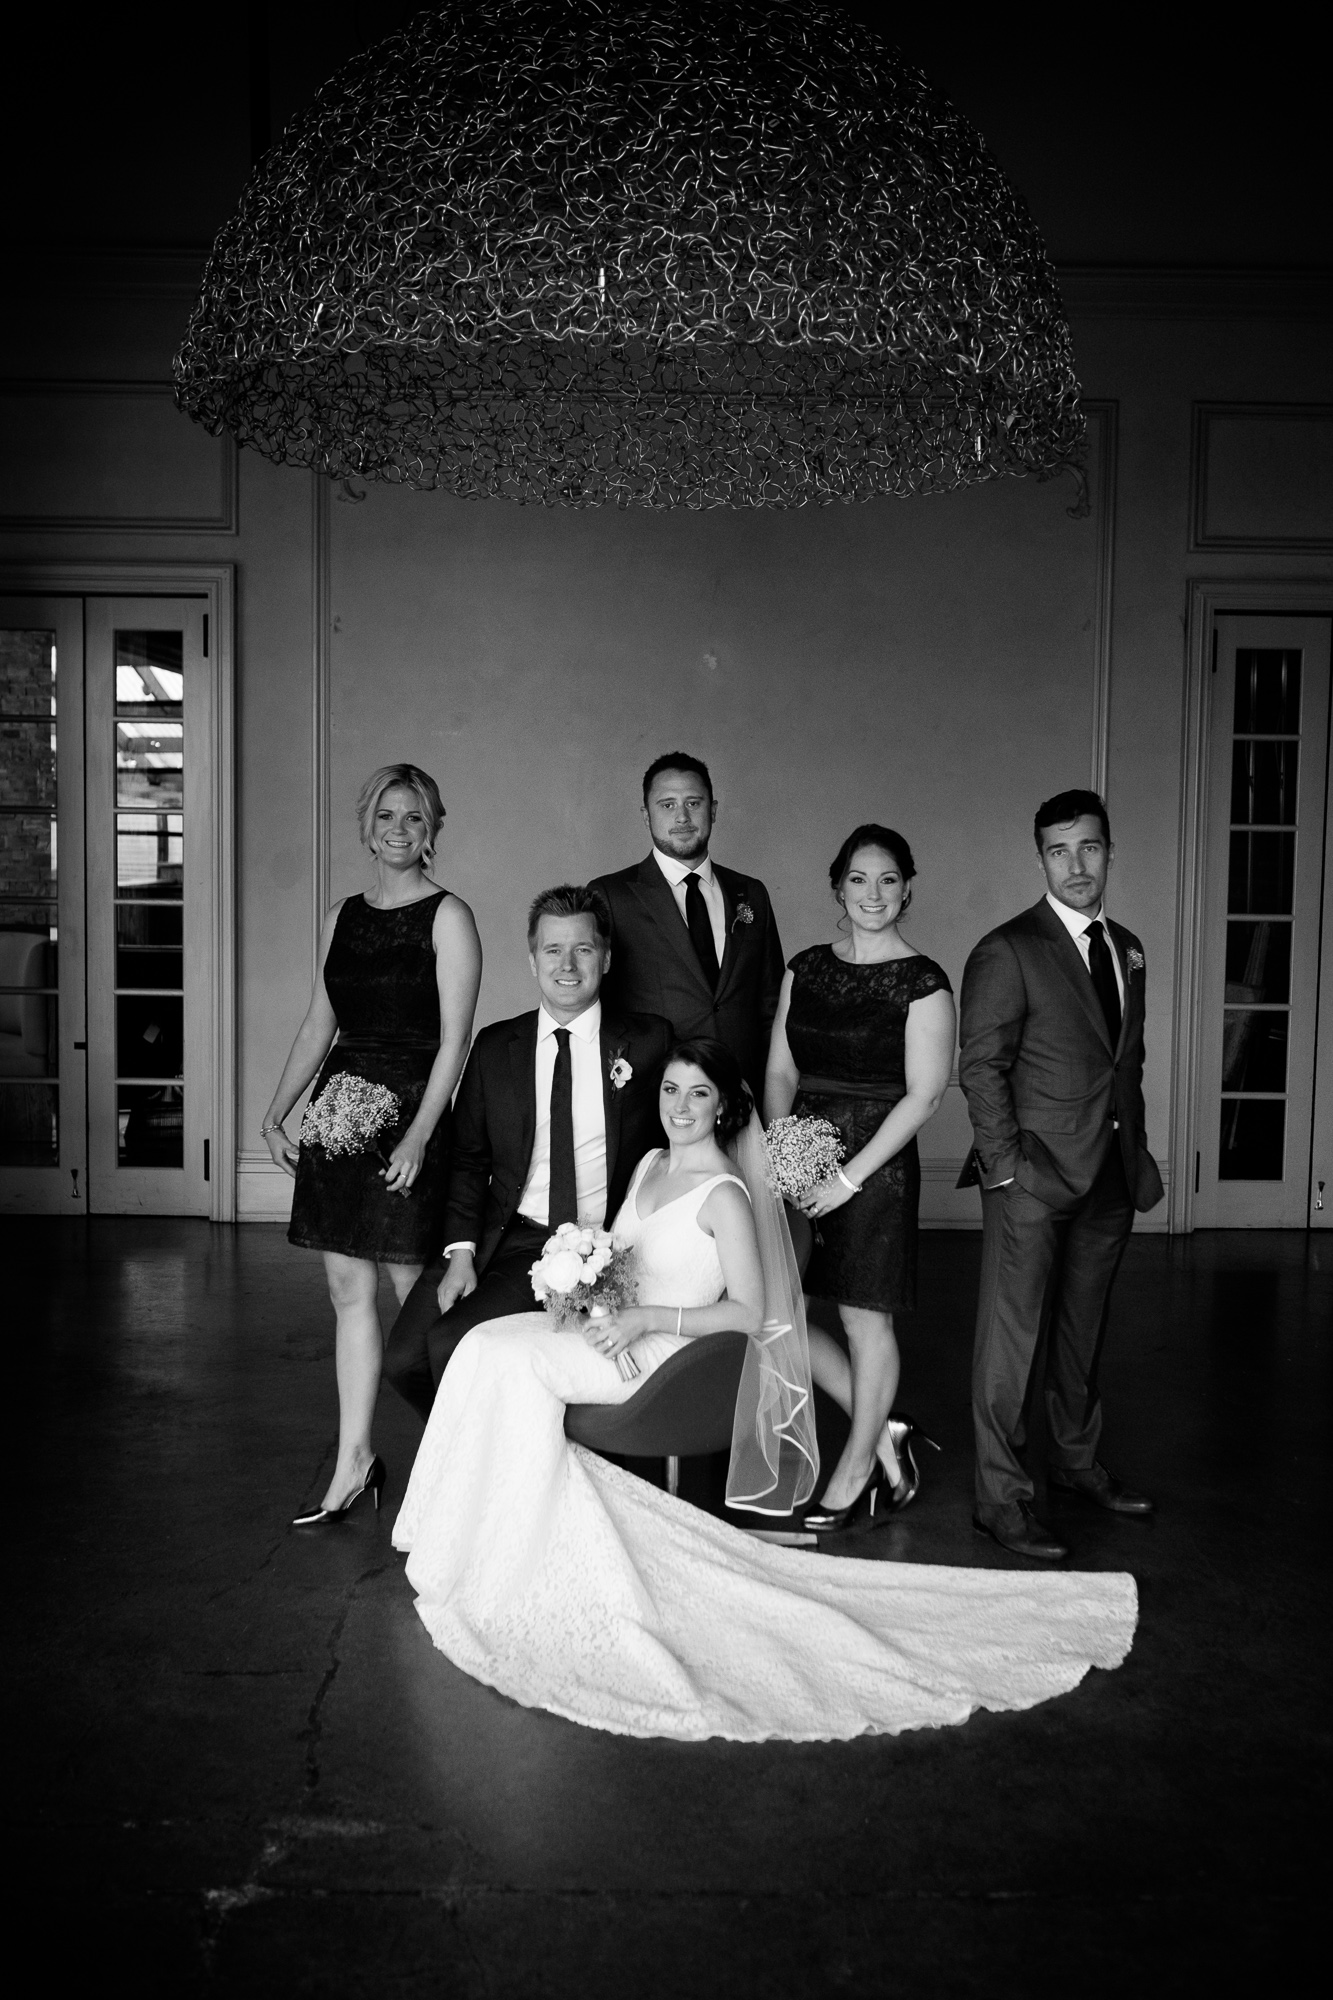 A simple and elegant portrait of the wedding party from Emilie + John's wedding at 99 Sudbury in Toronto.